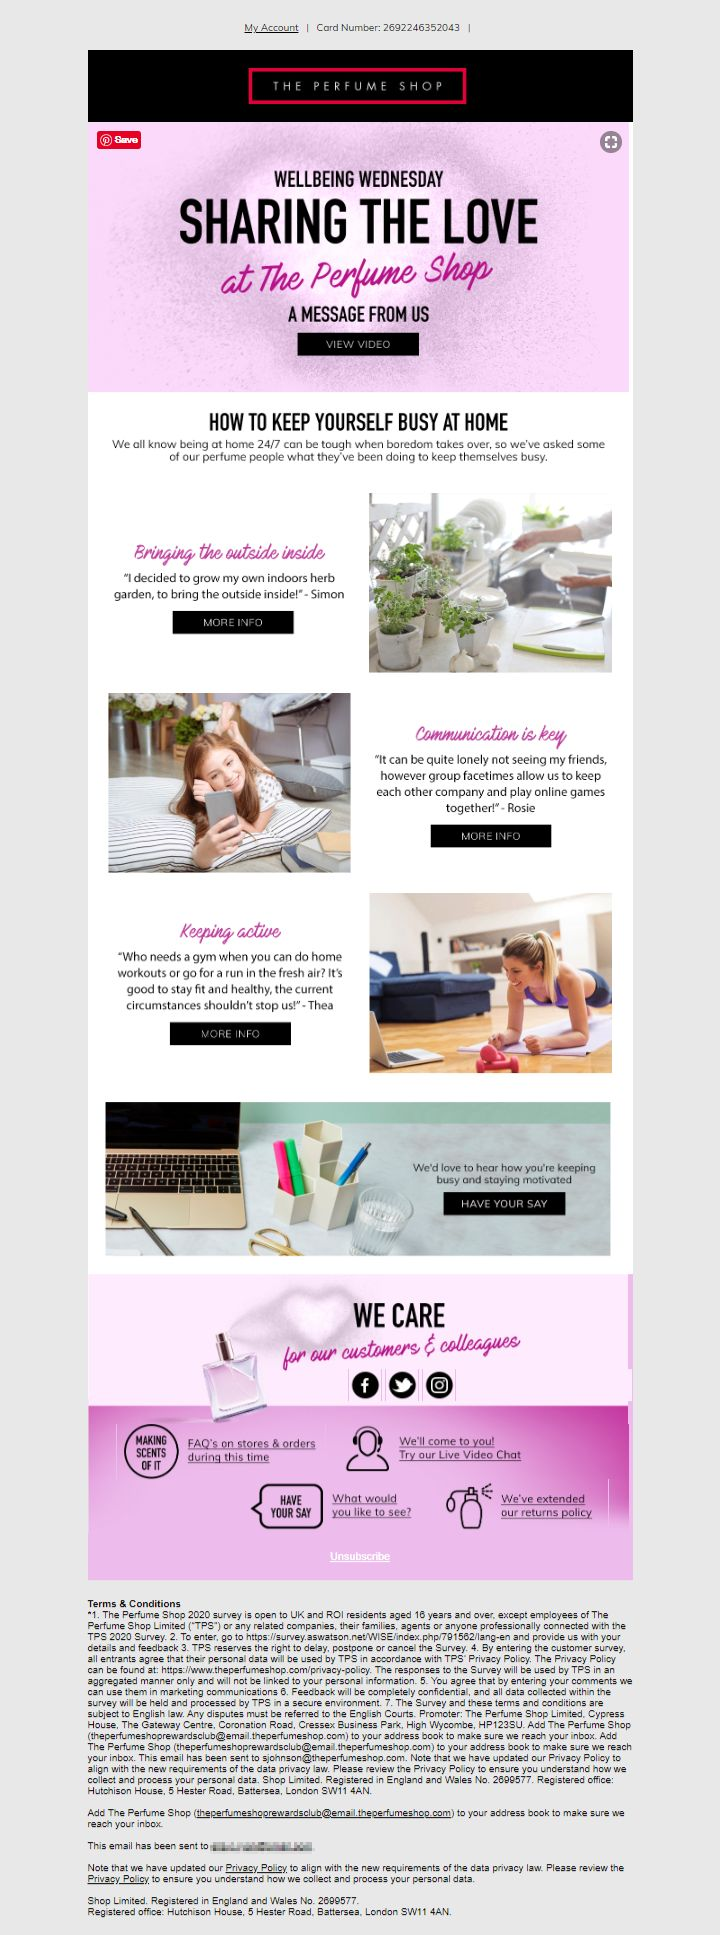 How to keep yourself busy at home newsletter email from